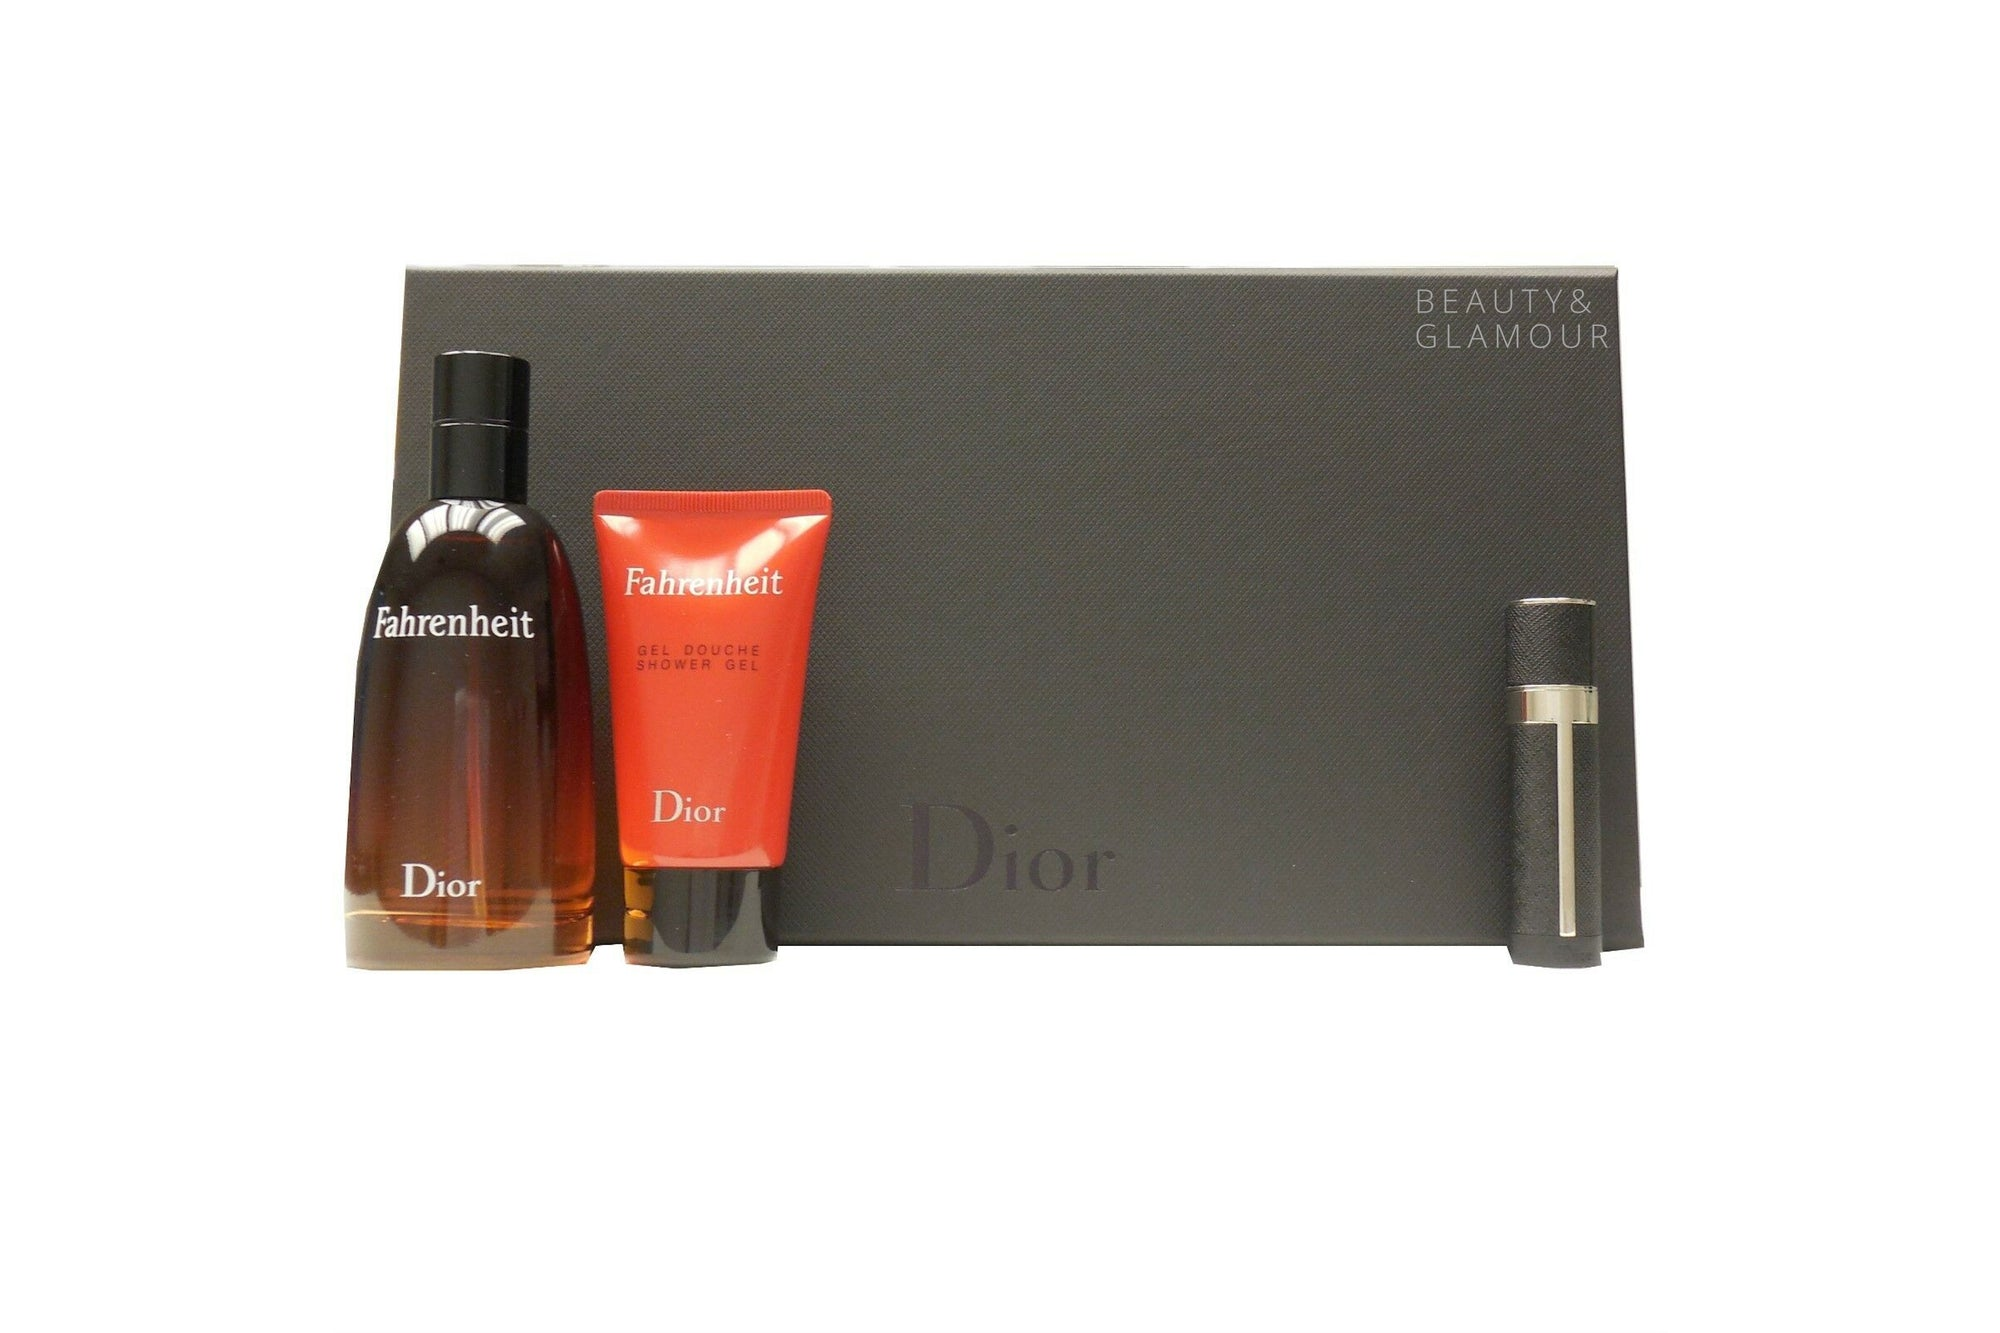 DIOR FAHRENHEIT 3 PIECE GIFT SET FOR MEN LIMITED EDITION